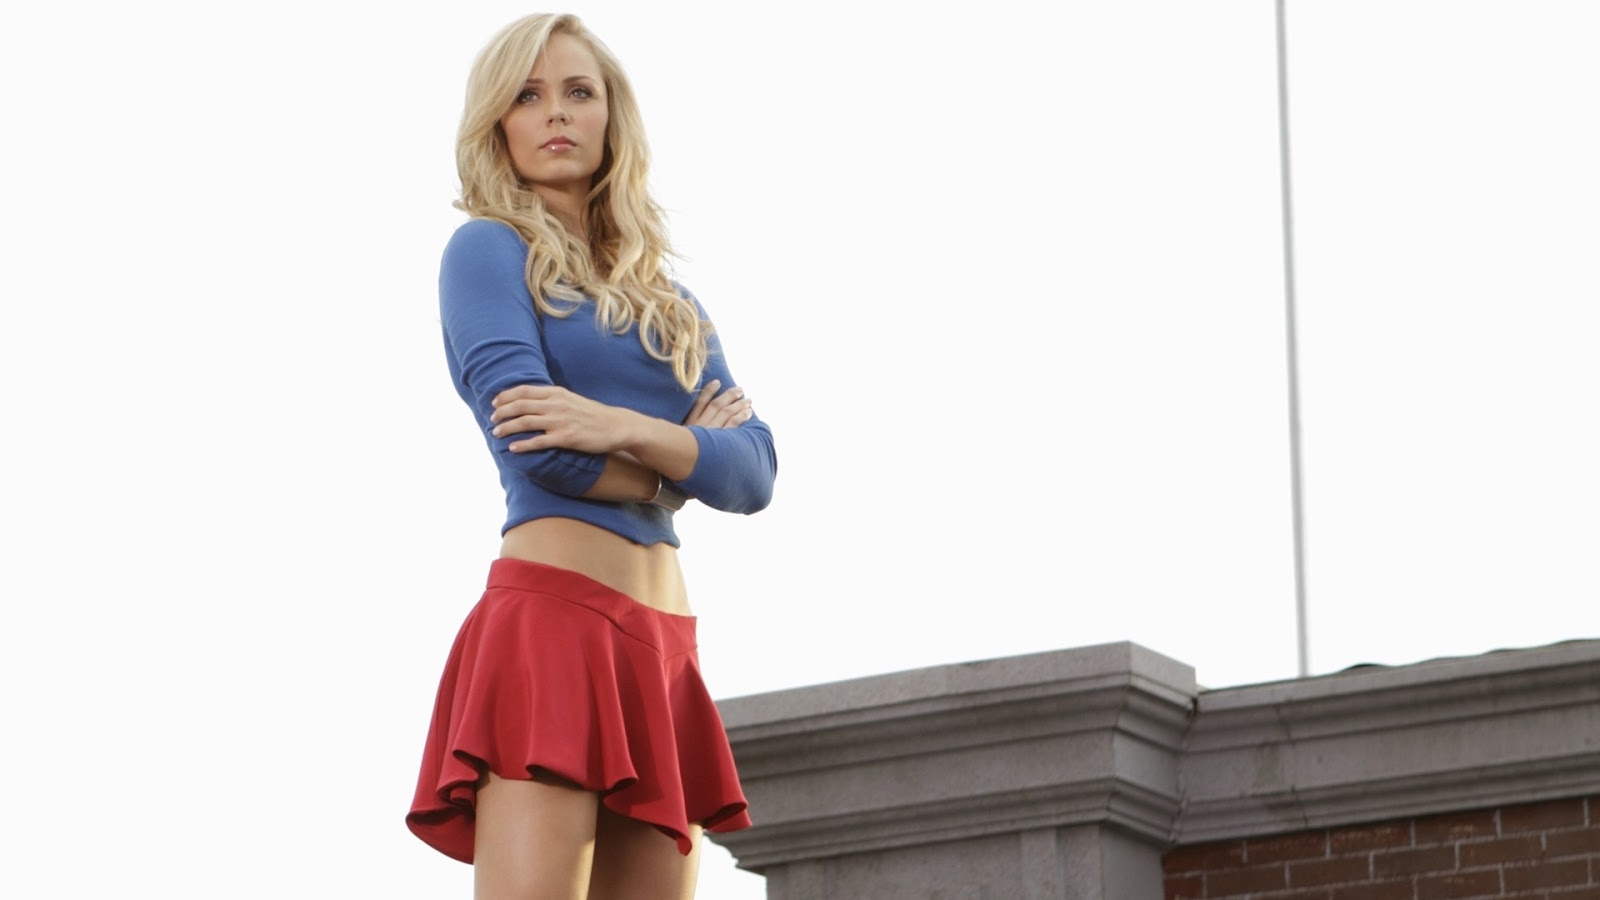 wallpaper hot di laura vandervoort nei panni di Supergirl | Laura Vandervoort supergirl wallpaper